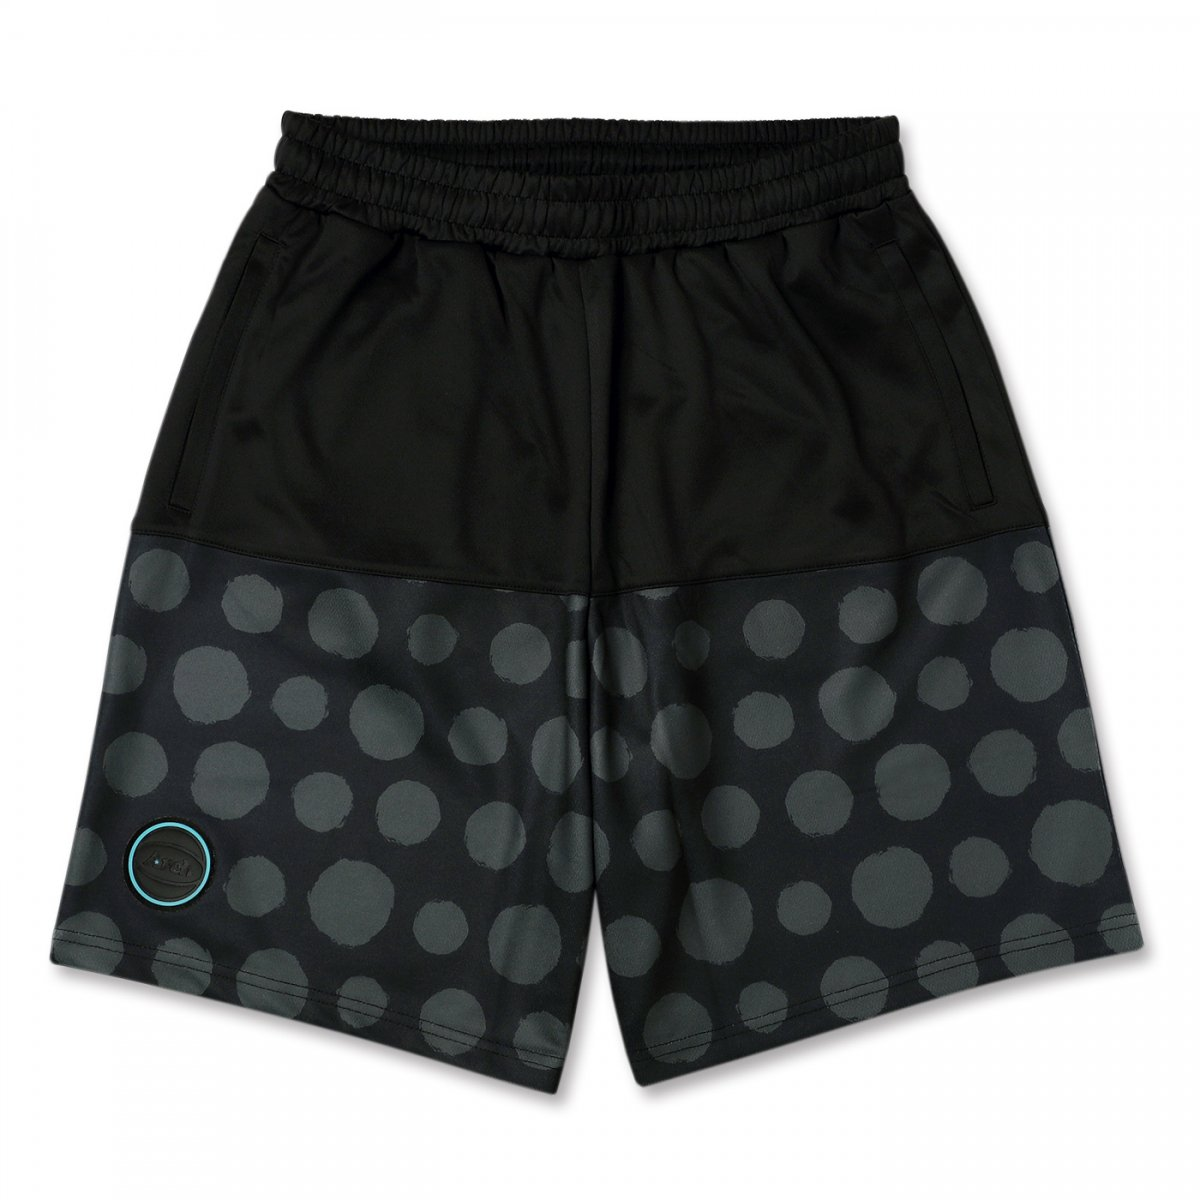 brush dot shorts 【black/gray】